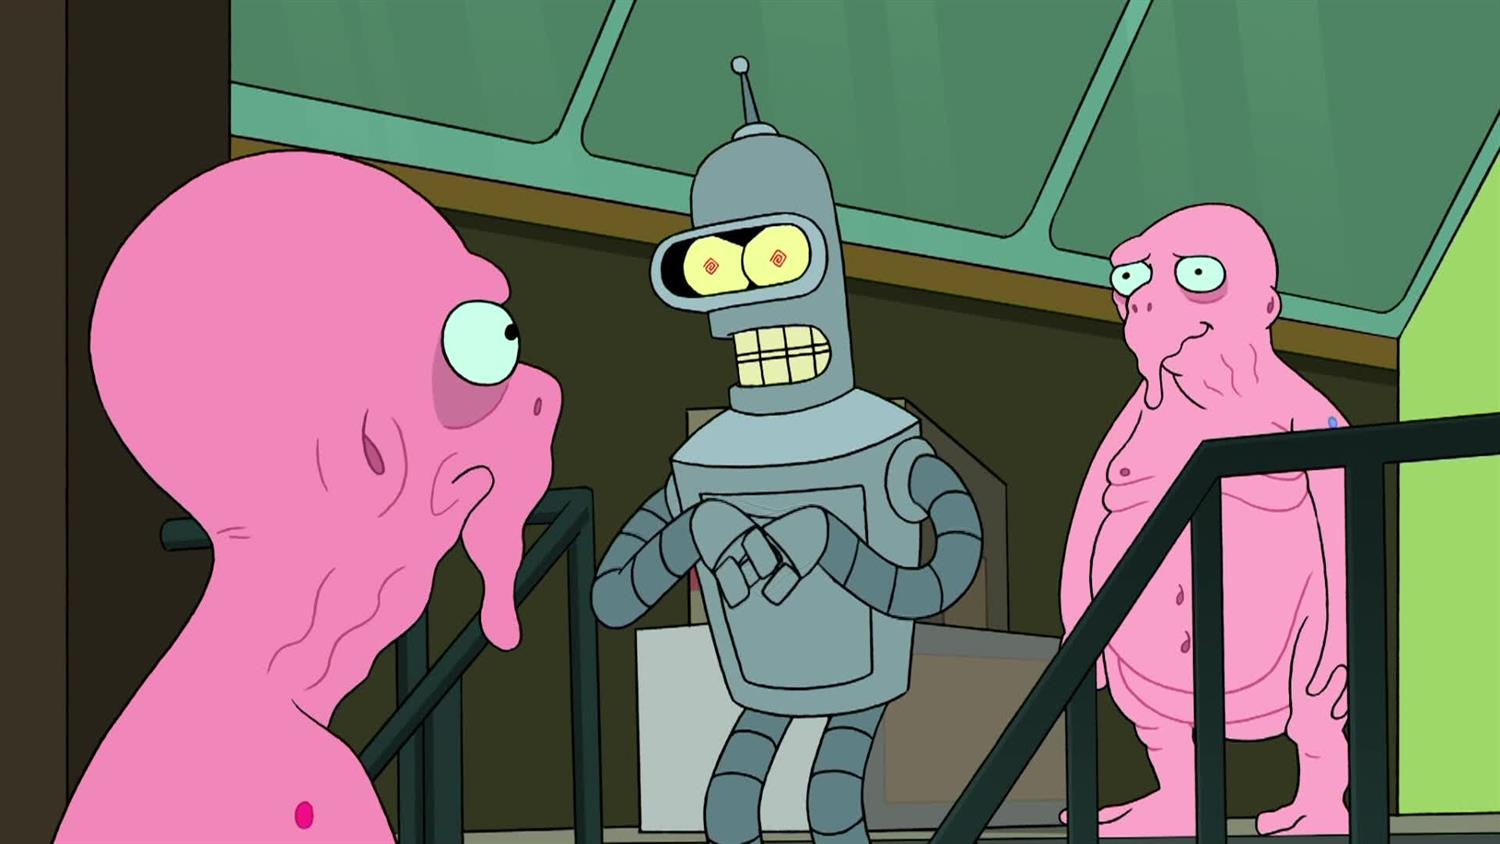 Bender the Thief